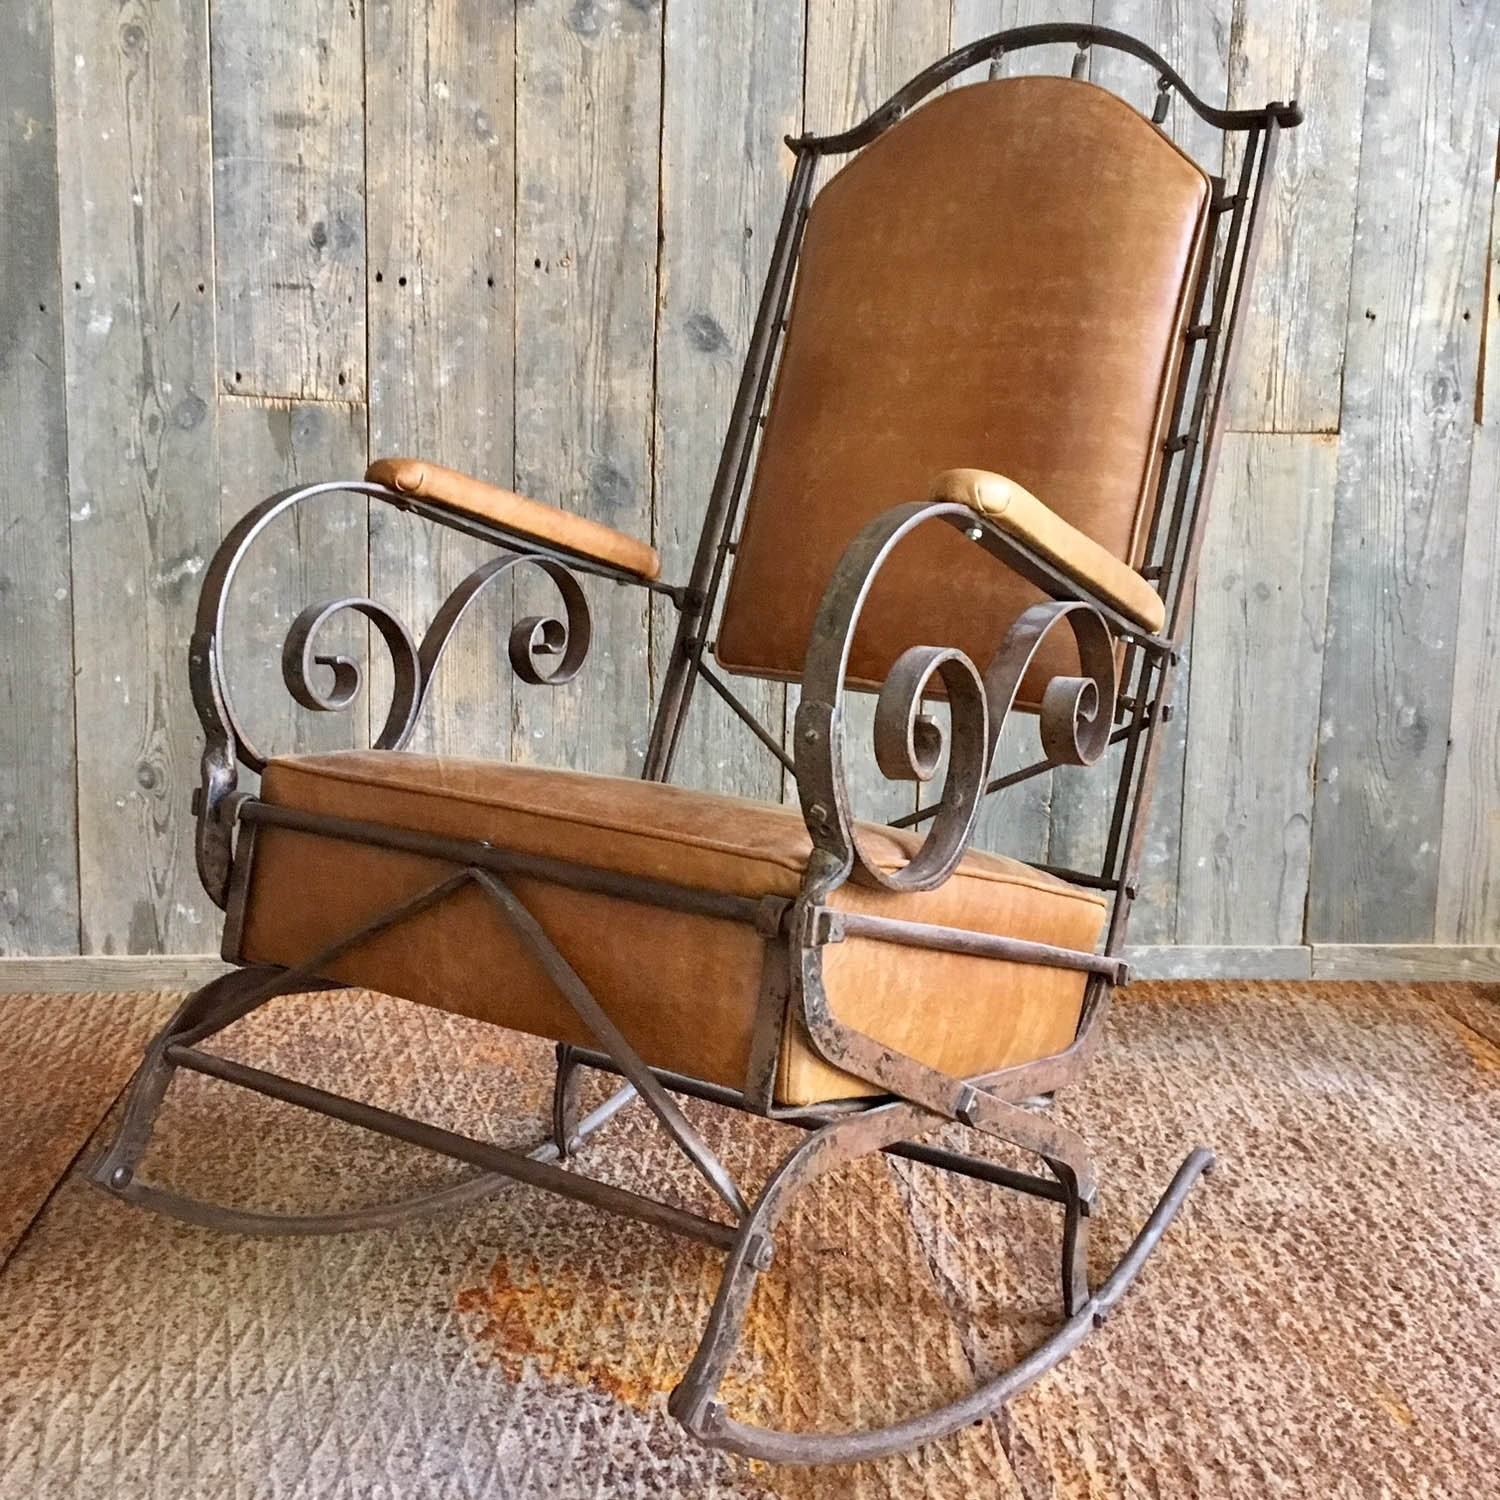 19th Century Wrought Iron and Leather Rocking Chair